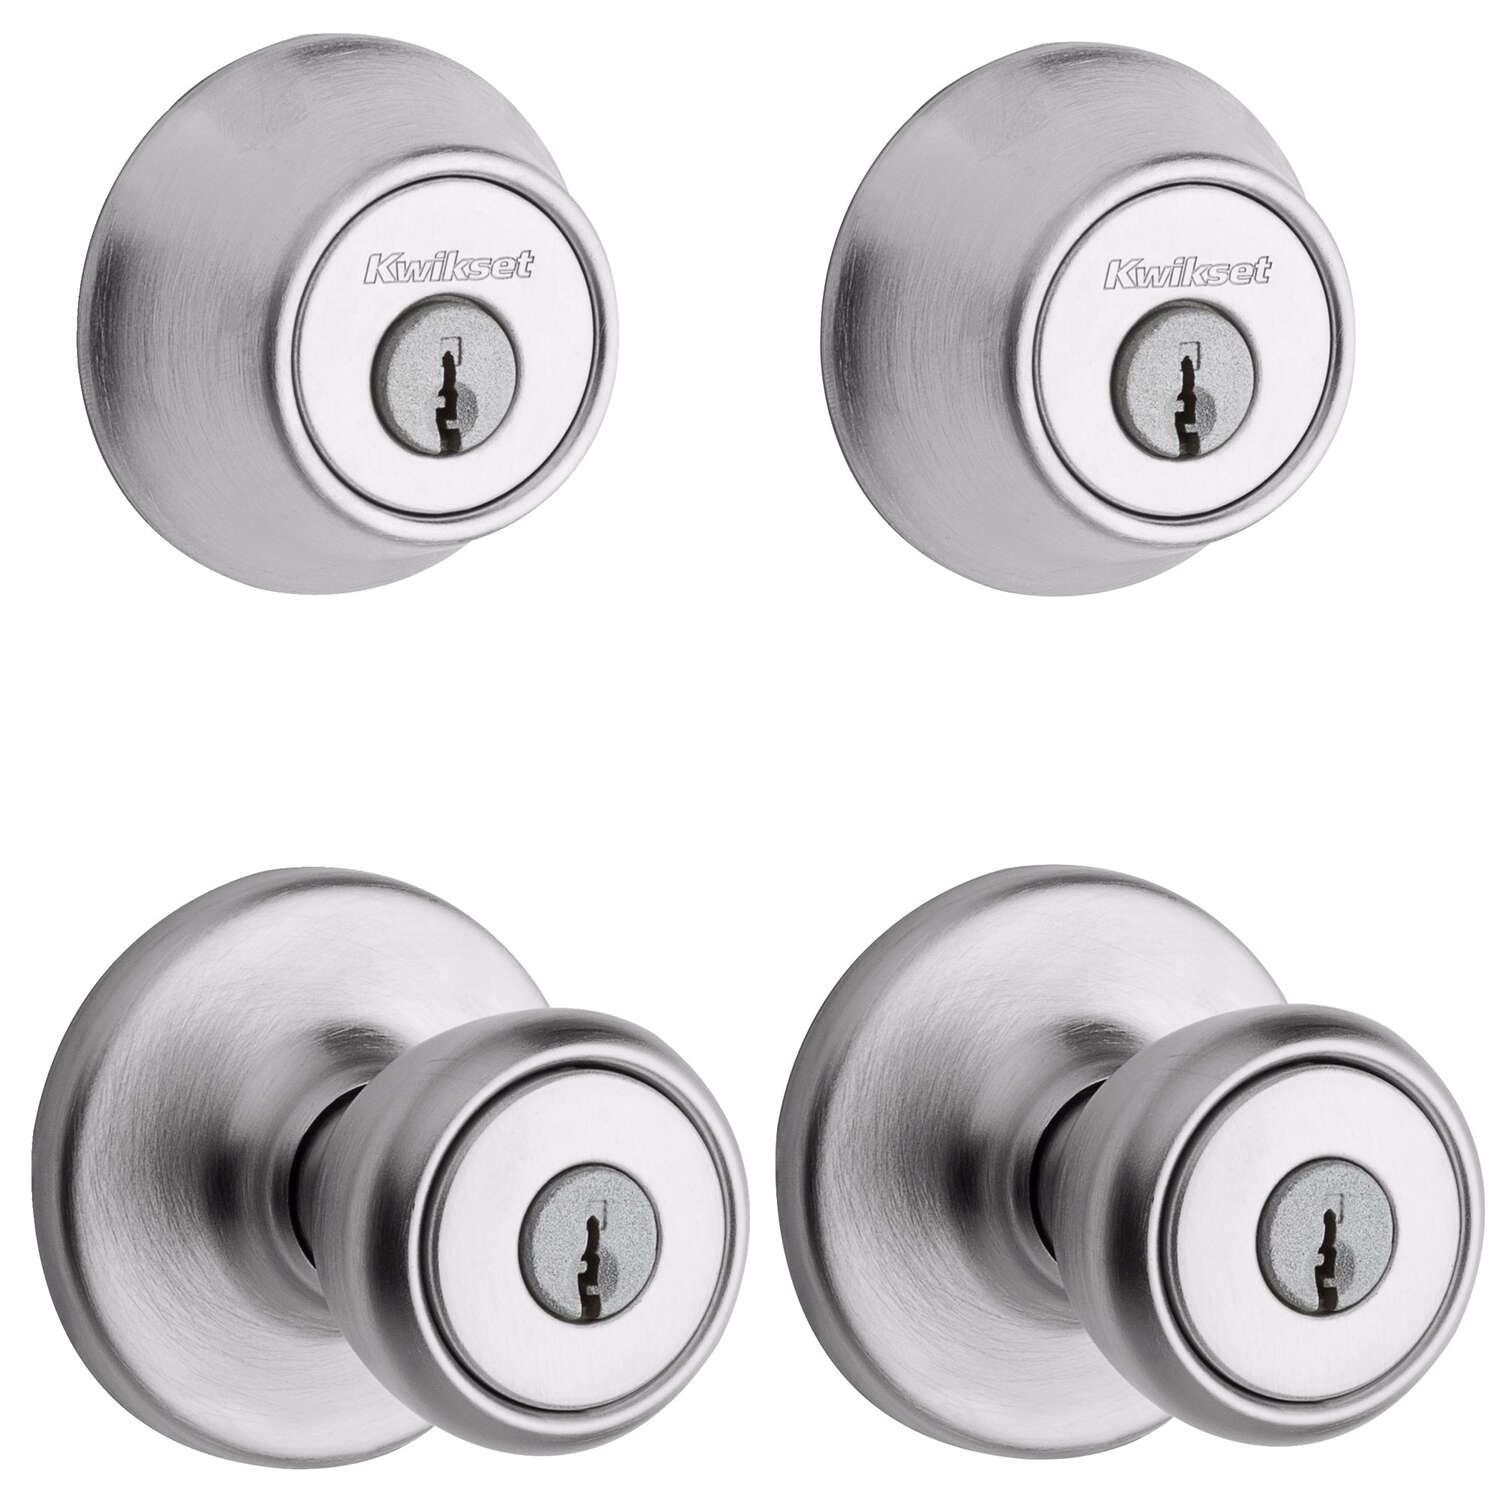 Kwikset  Tylo  Satin Chrome  Deadbolt and Entry Door Knob  ANSI/BHMA Grade 3  1-3/4 in.